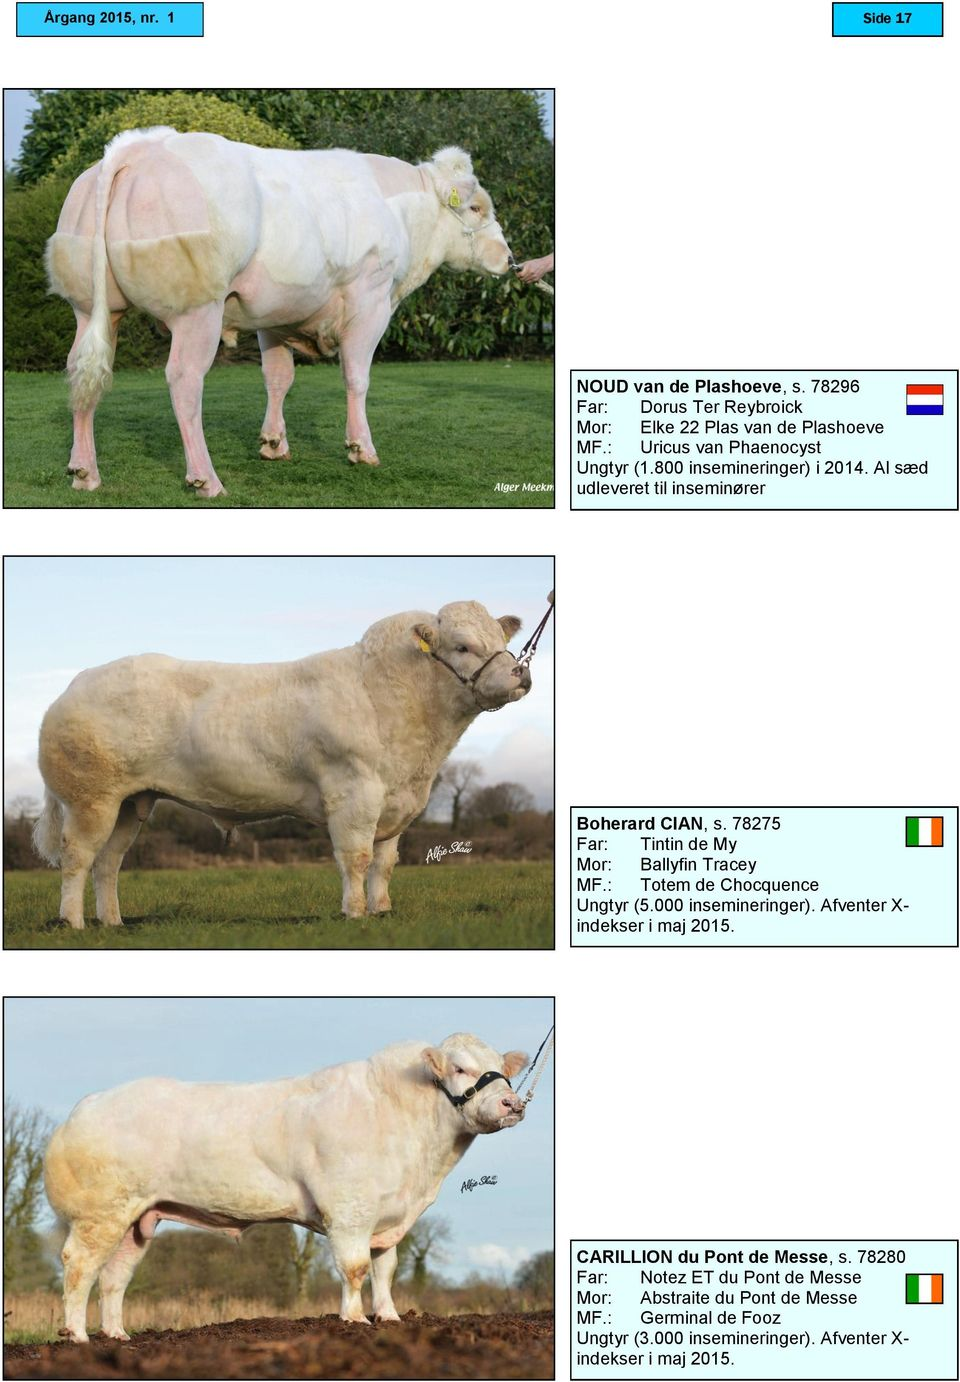 78275 Tintin de My Ballyfin Tracey Totem de Chocquence Ungtyr (5.000 insemineringer). Afventer X- indekser i maj 2015.